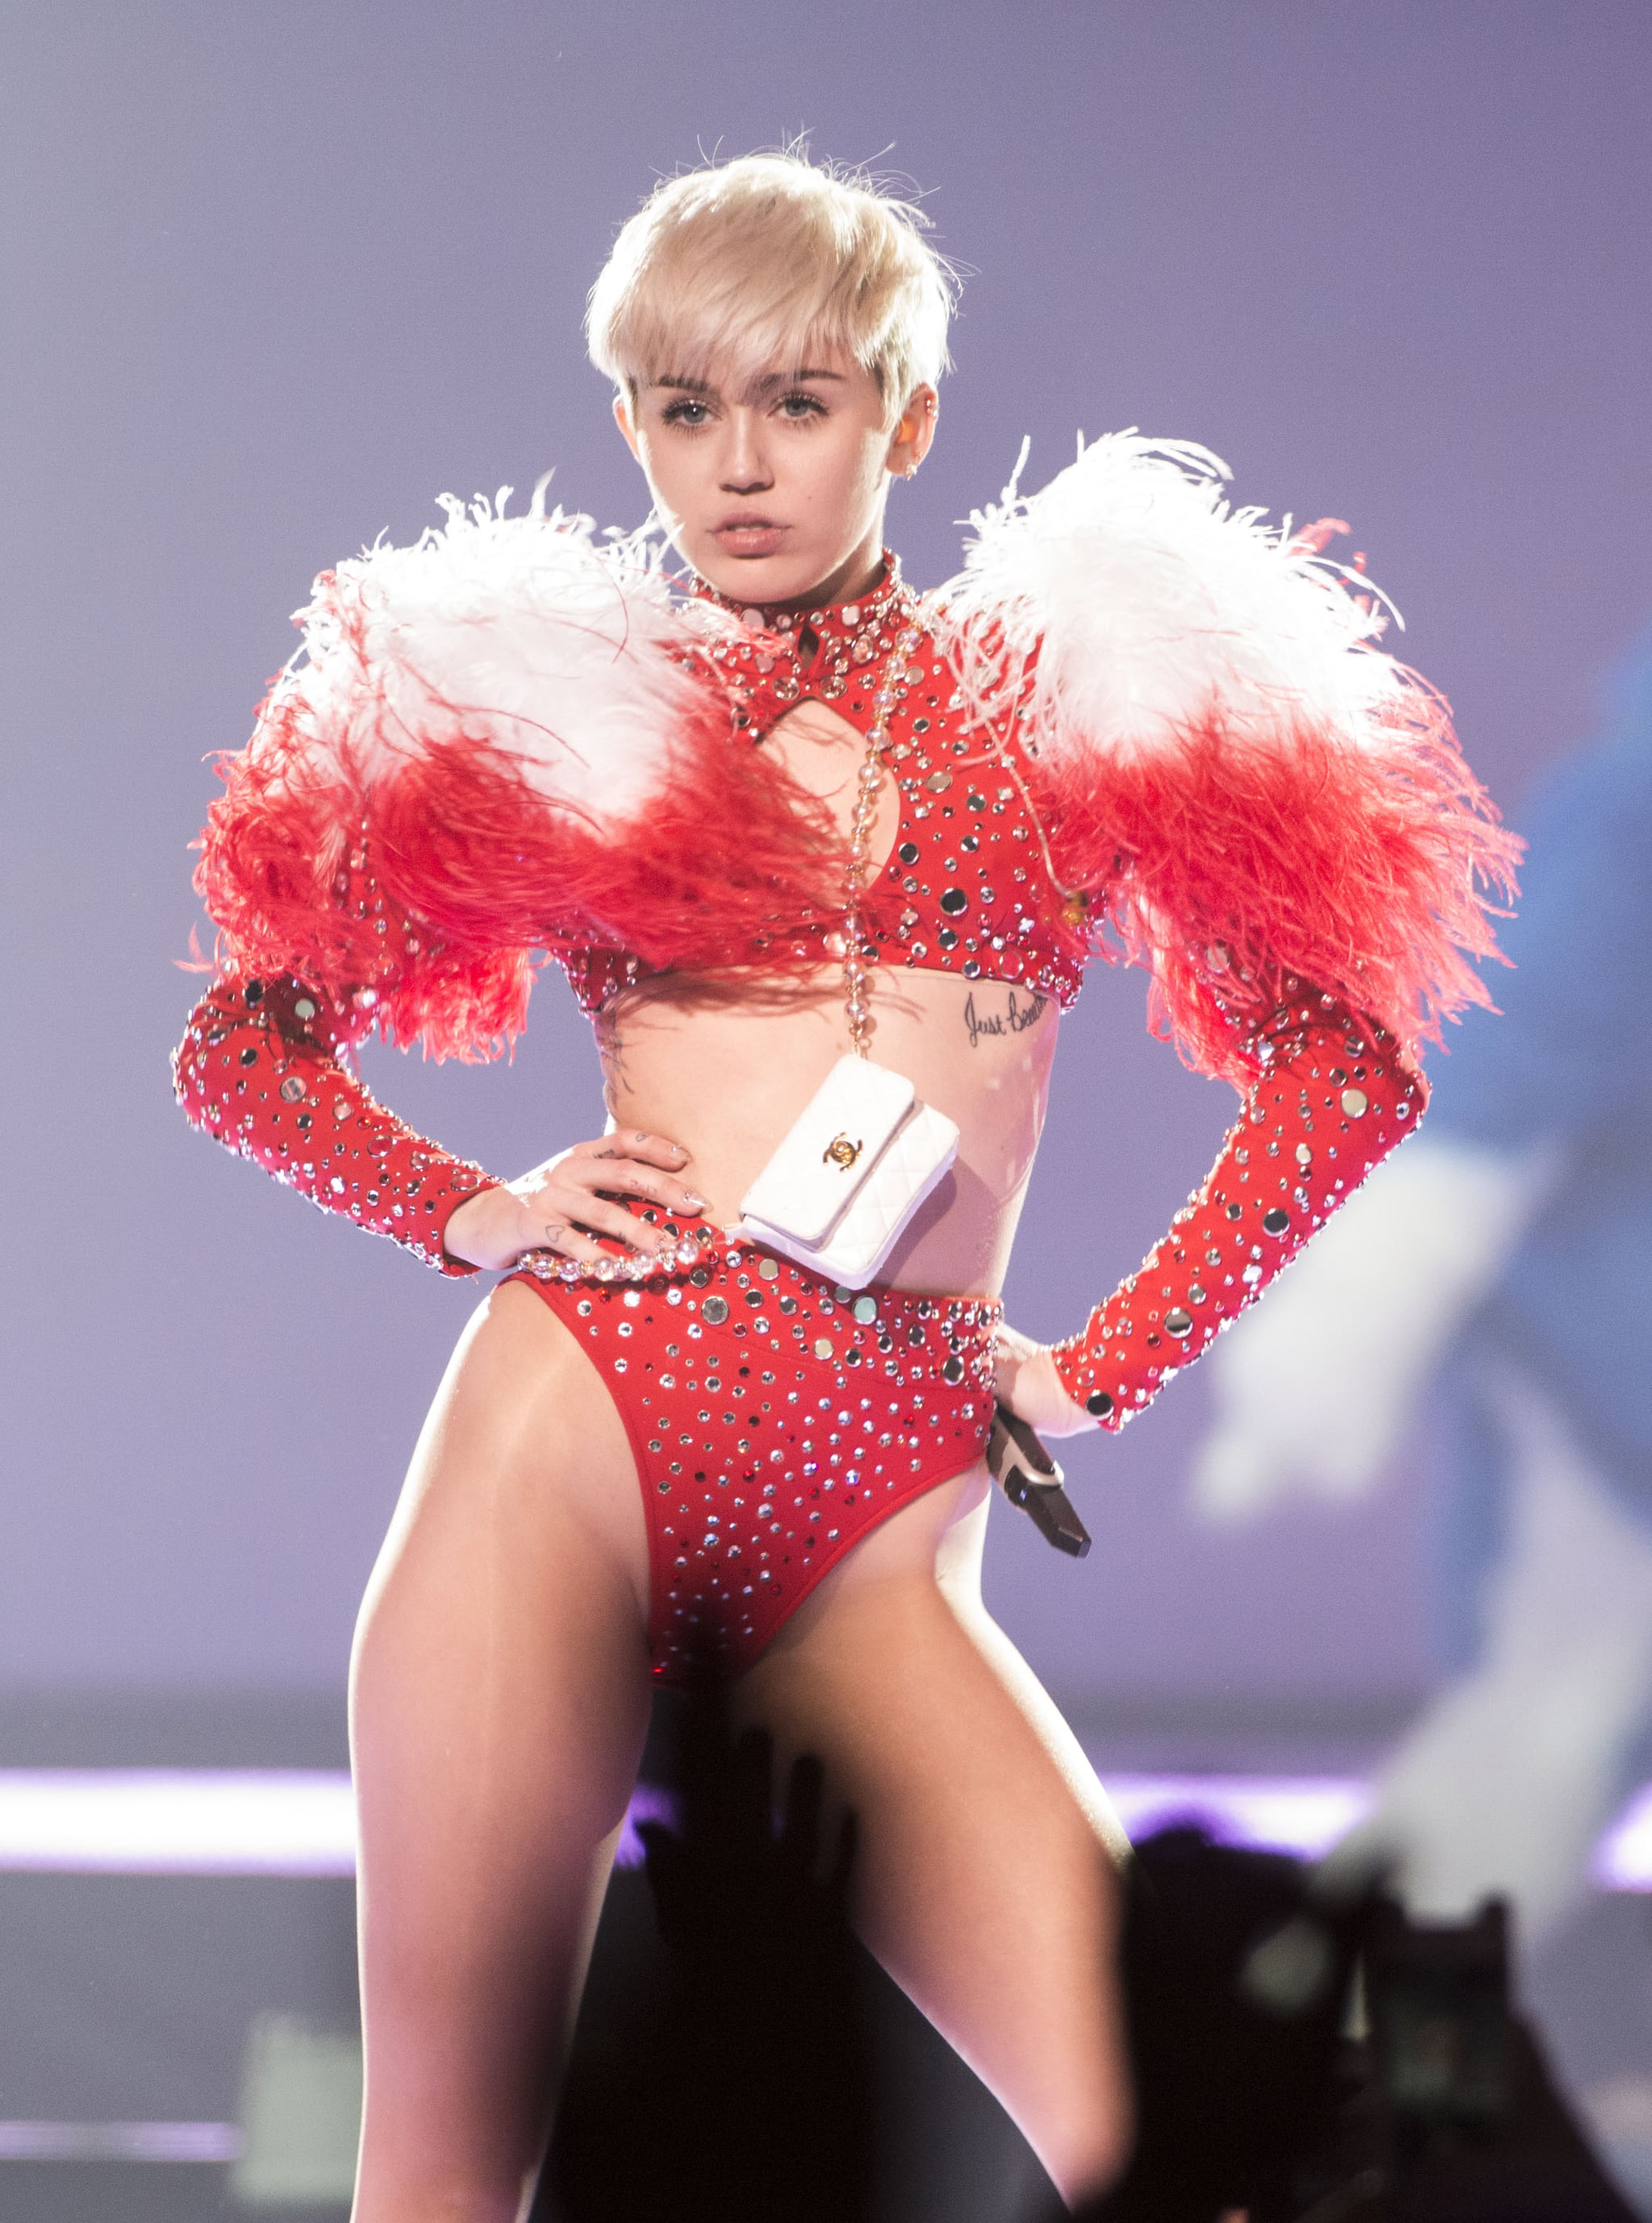 Miley's New Tour Makes the VMAs Look G-Rated